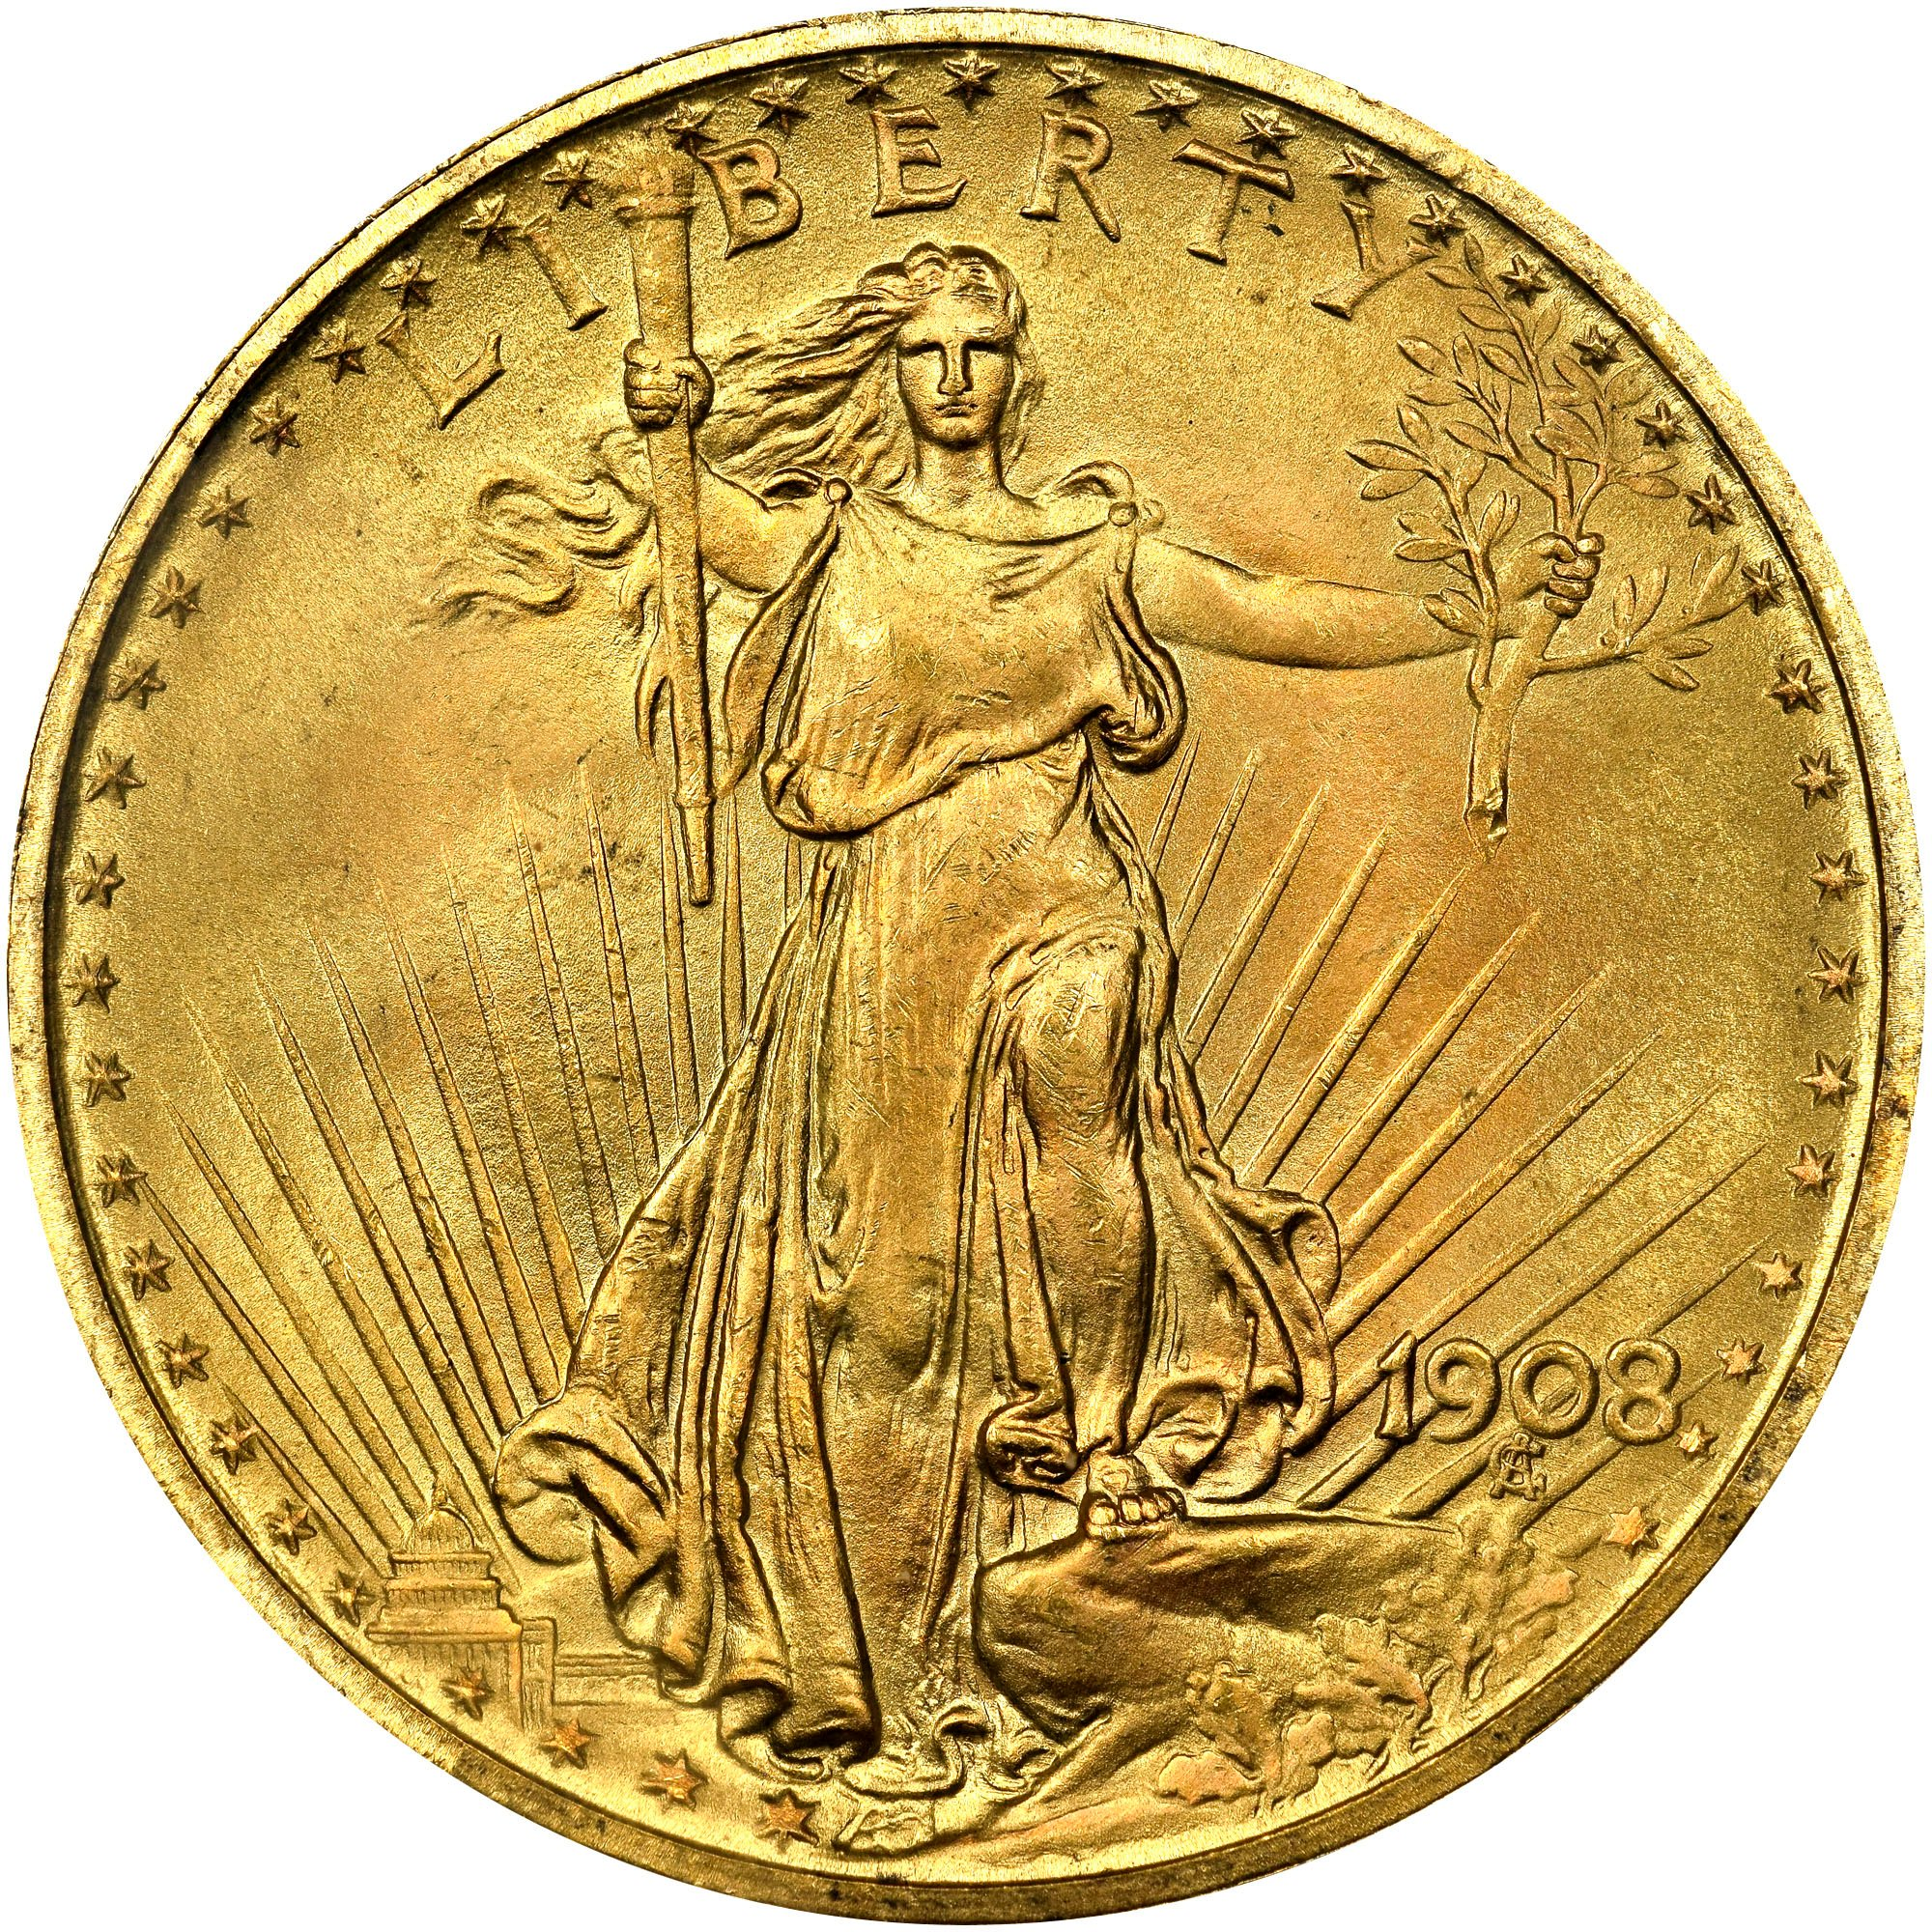 US Gold Saint Gaudens Double Eagle $20 1908-P Obverse